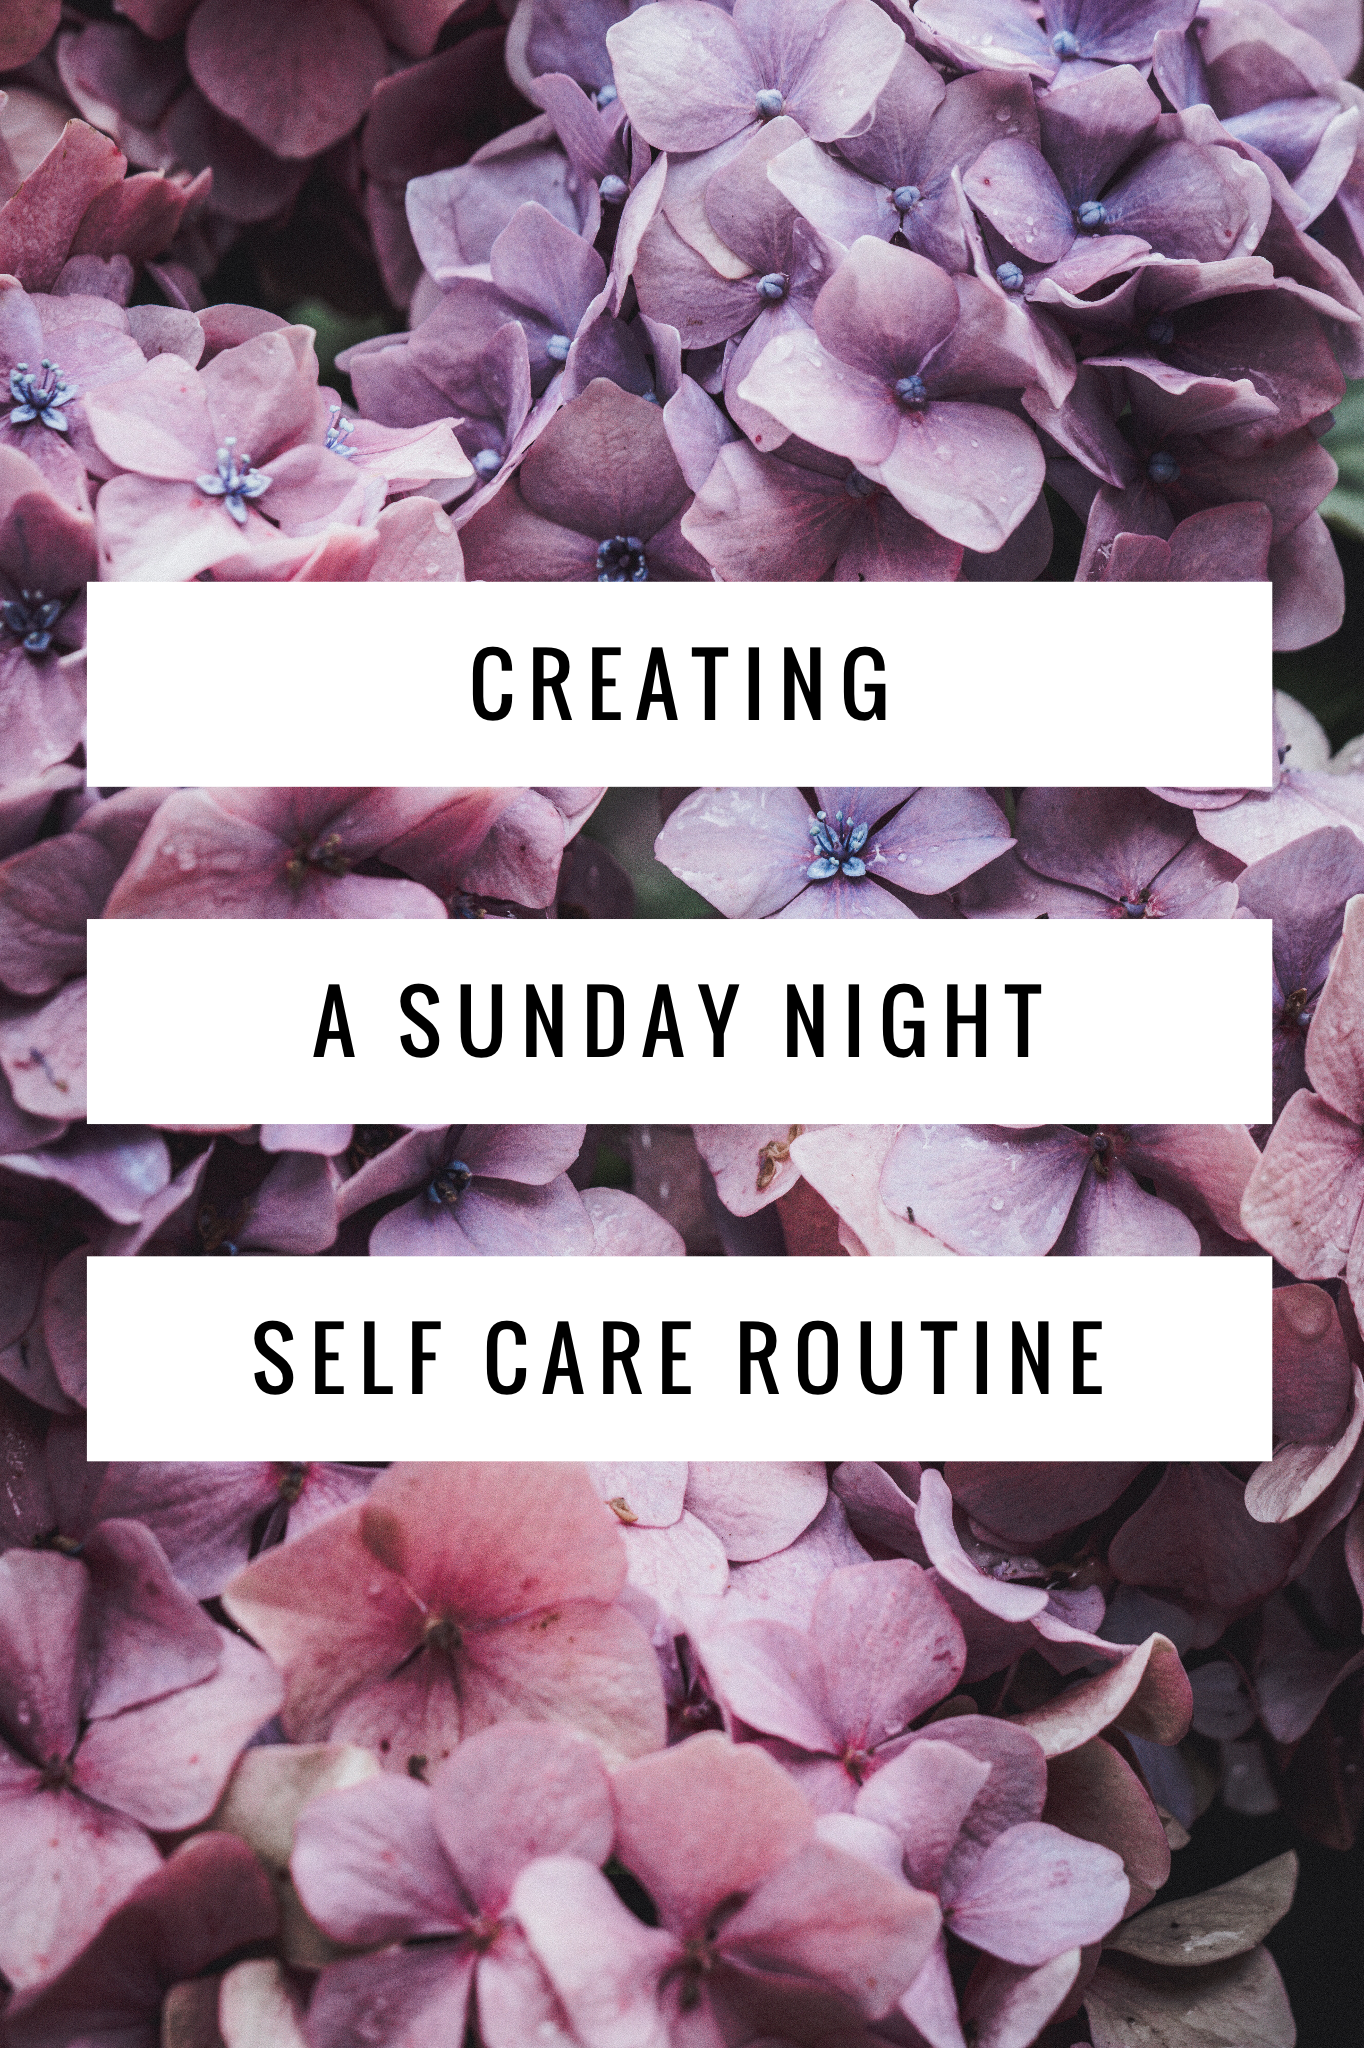 Here's a bunch of ways to create a Sunday night self-care routine. #selfcare #spaday